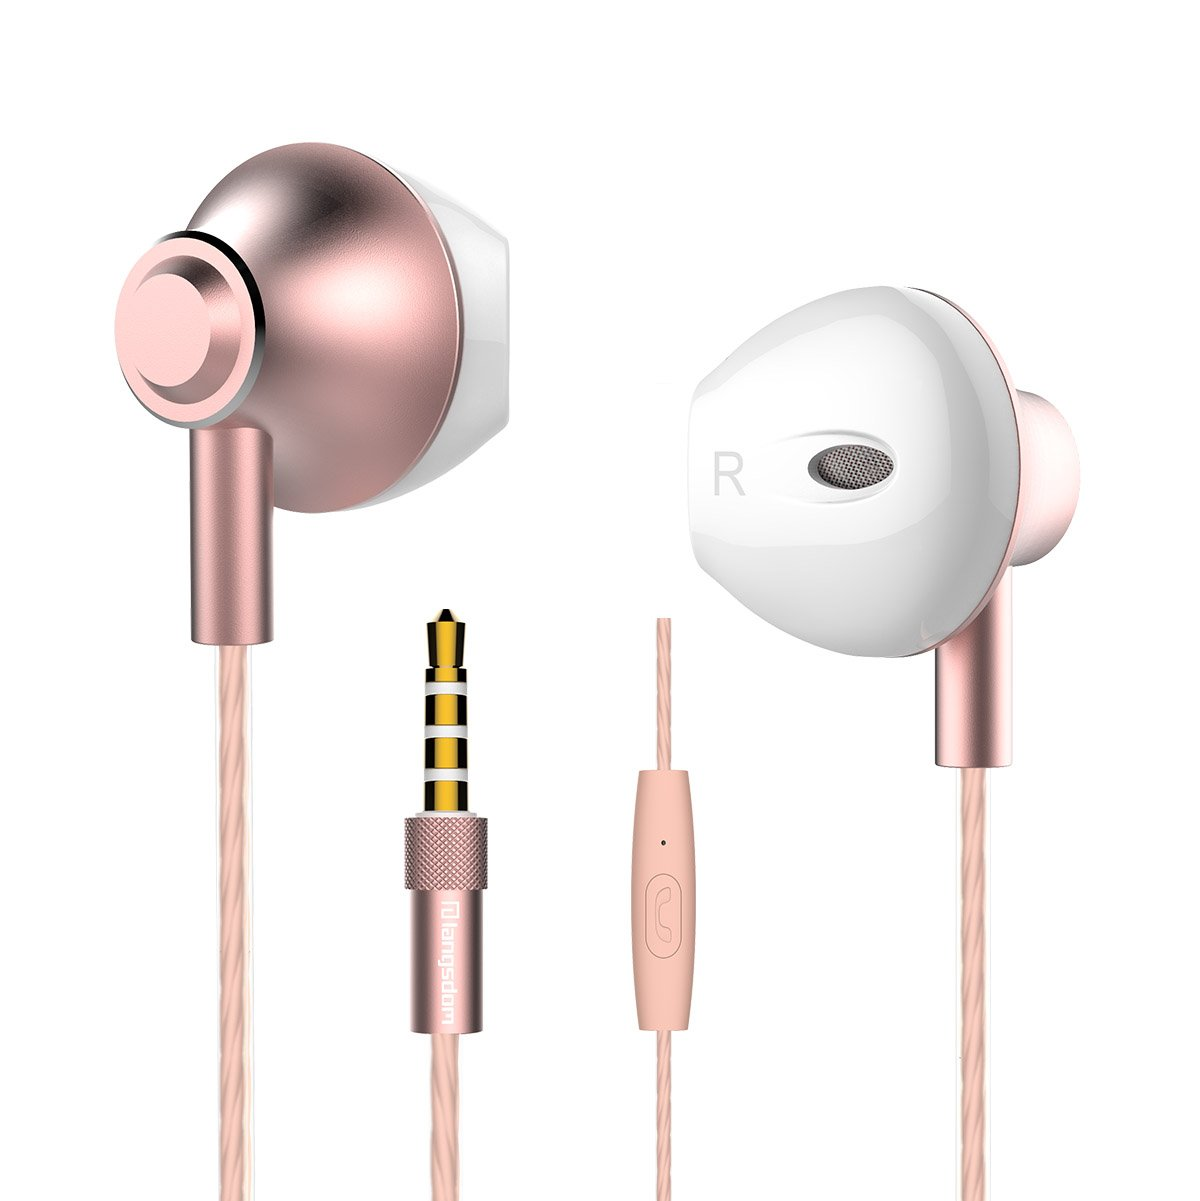 Personalized Rose Gold Earbuds,Langsdom F9 Headphones Powerful Bass Remote Control Microphone iOS, Samsung, Android,MP3 & MP4 Players (Woman,Case)